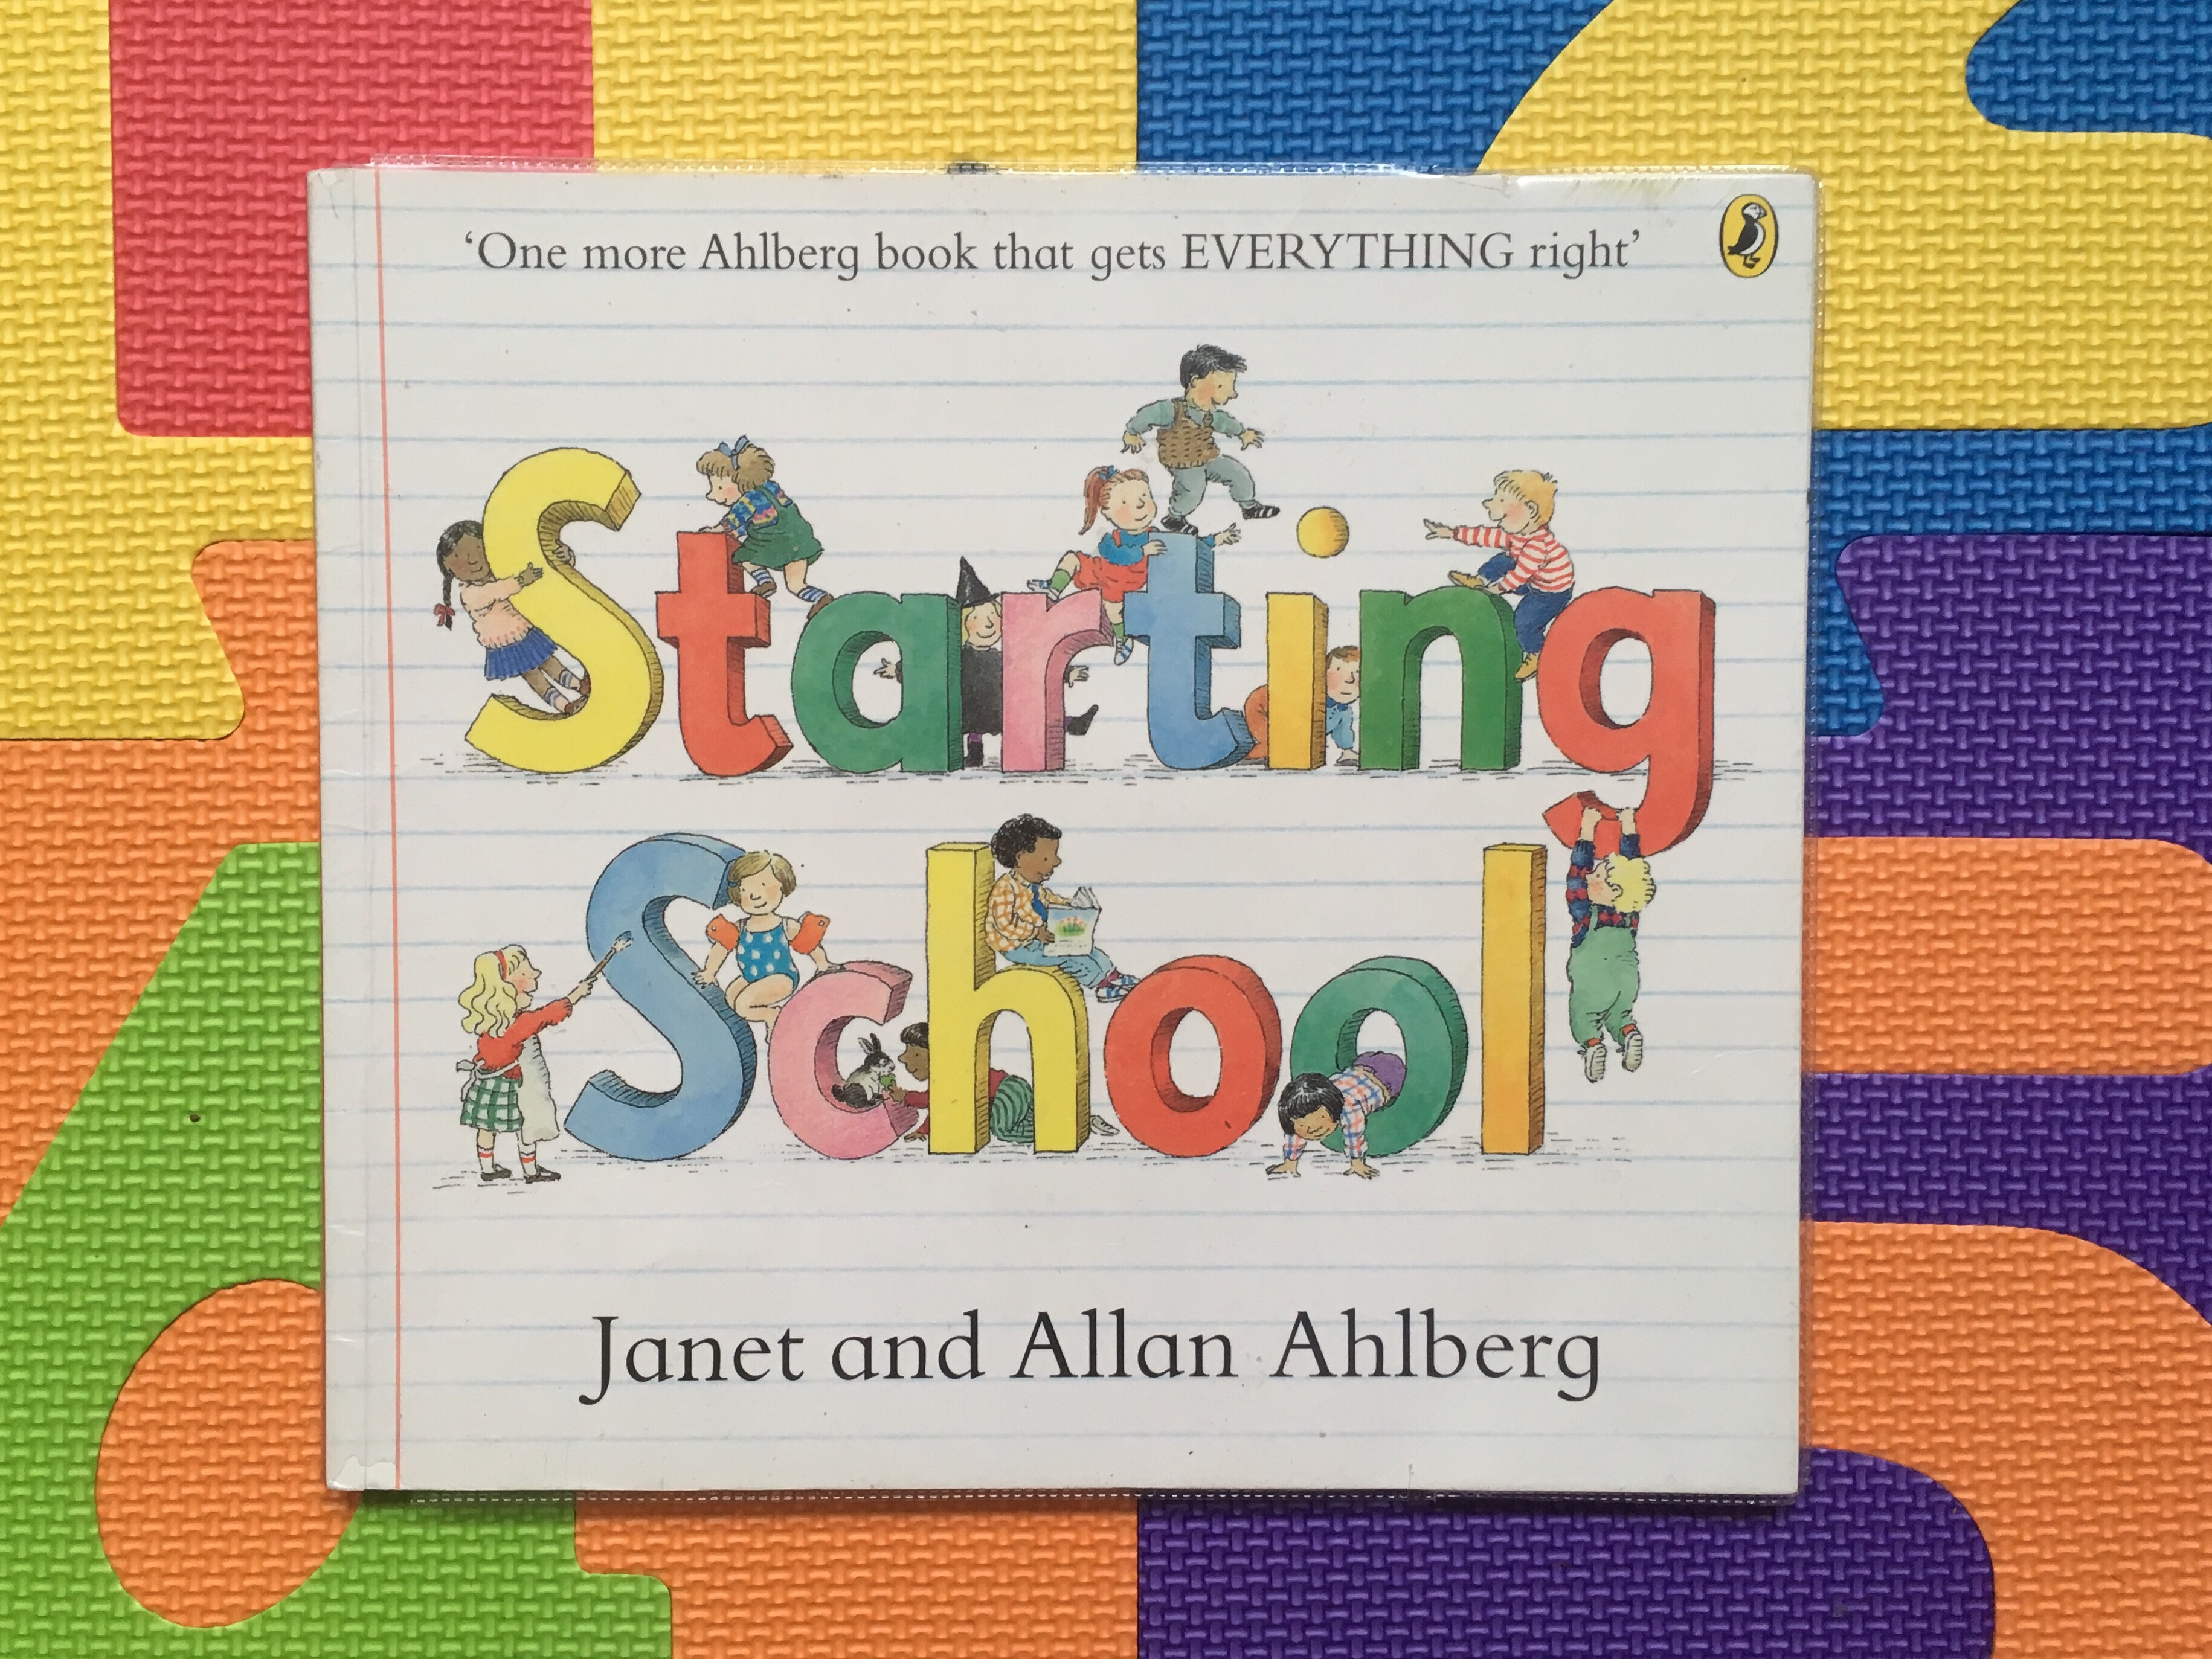 Cover of Starting School by Janet and Allan Ahlberg